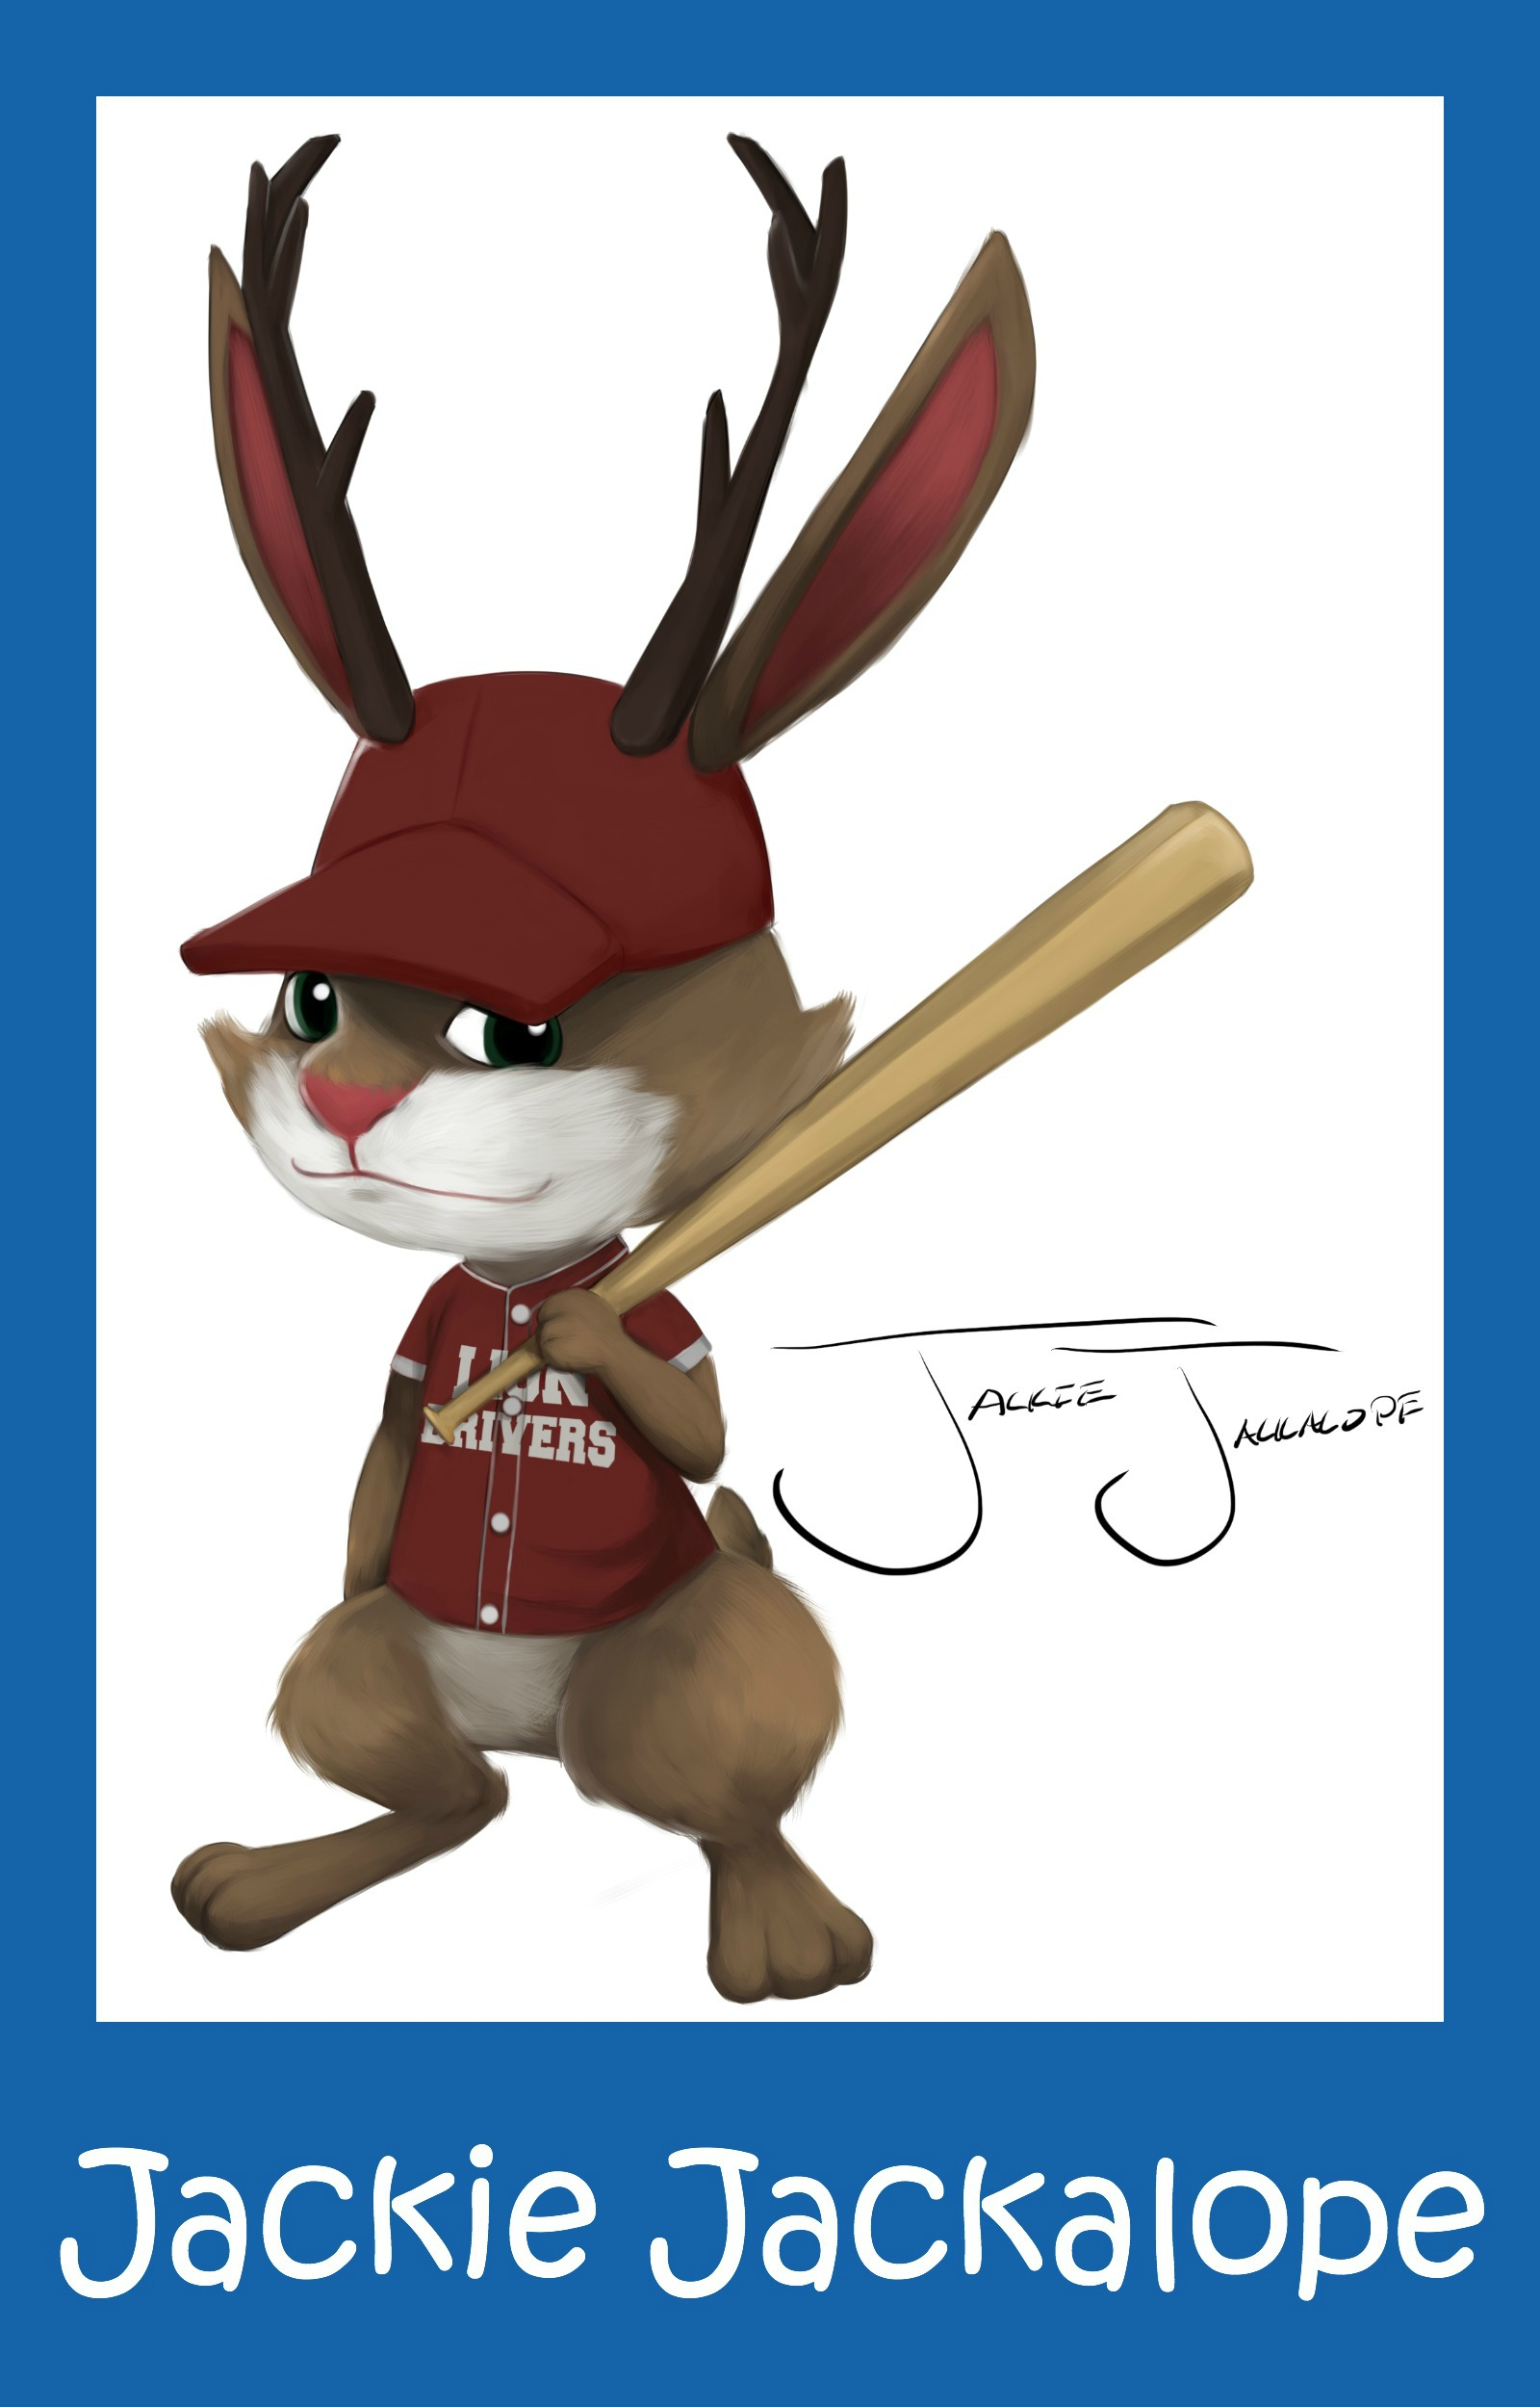 The new hot-shot player on the Lion Drivers, Jackie Jackalope can face any pitcher, but can he take on The Squirrel?